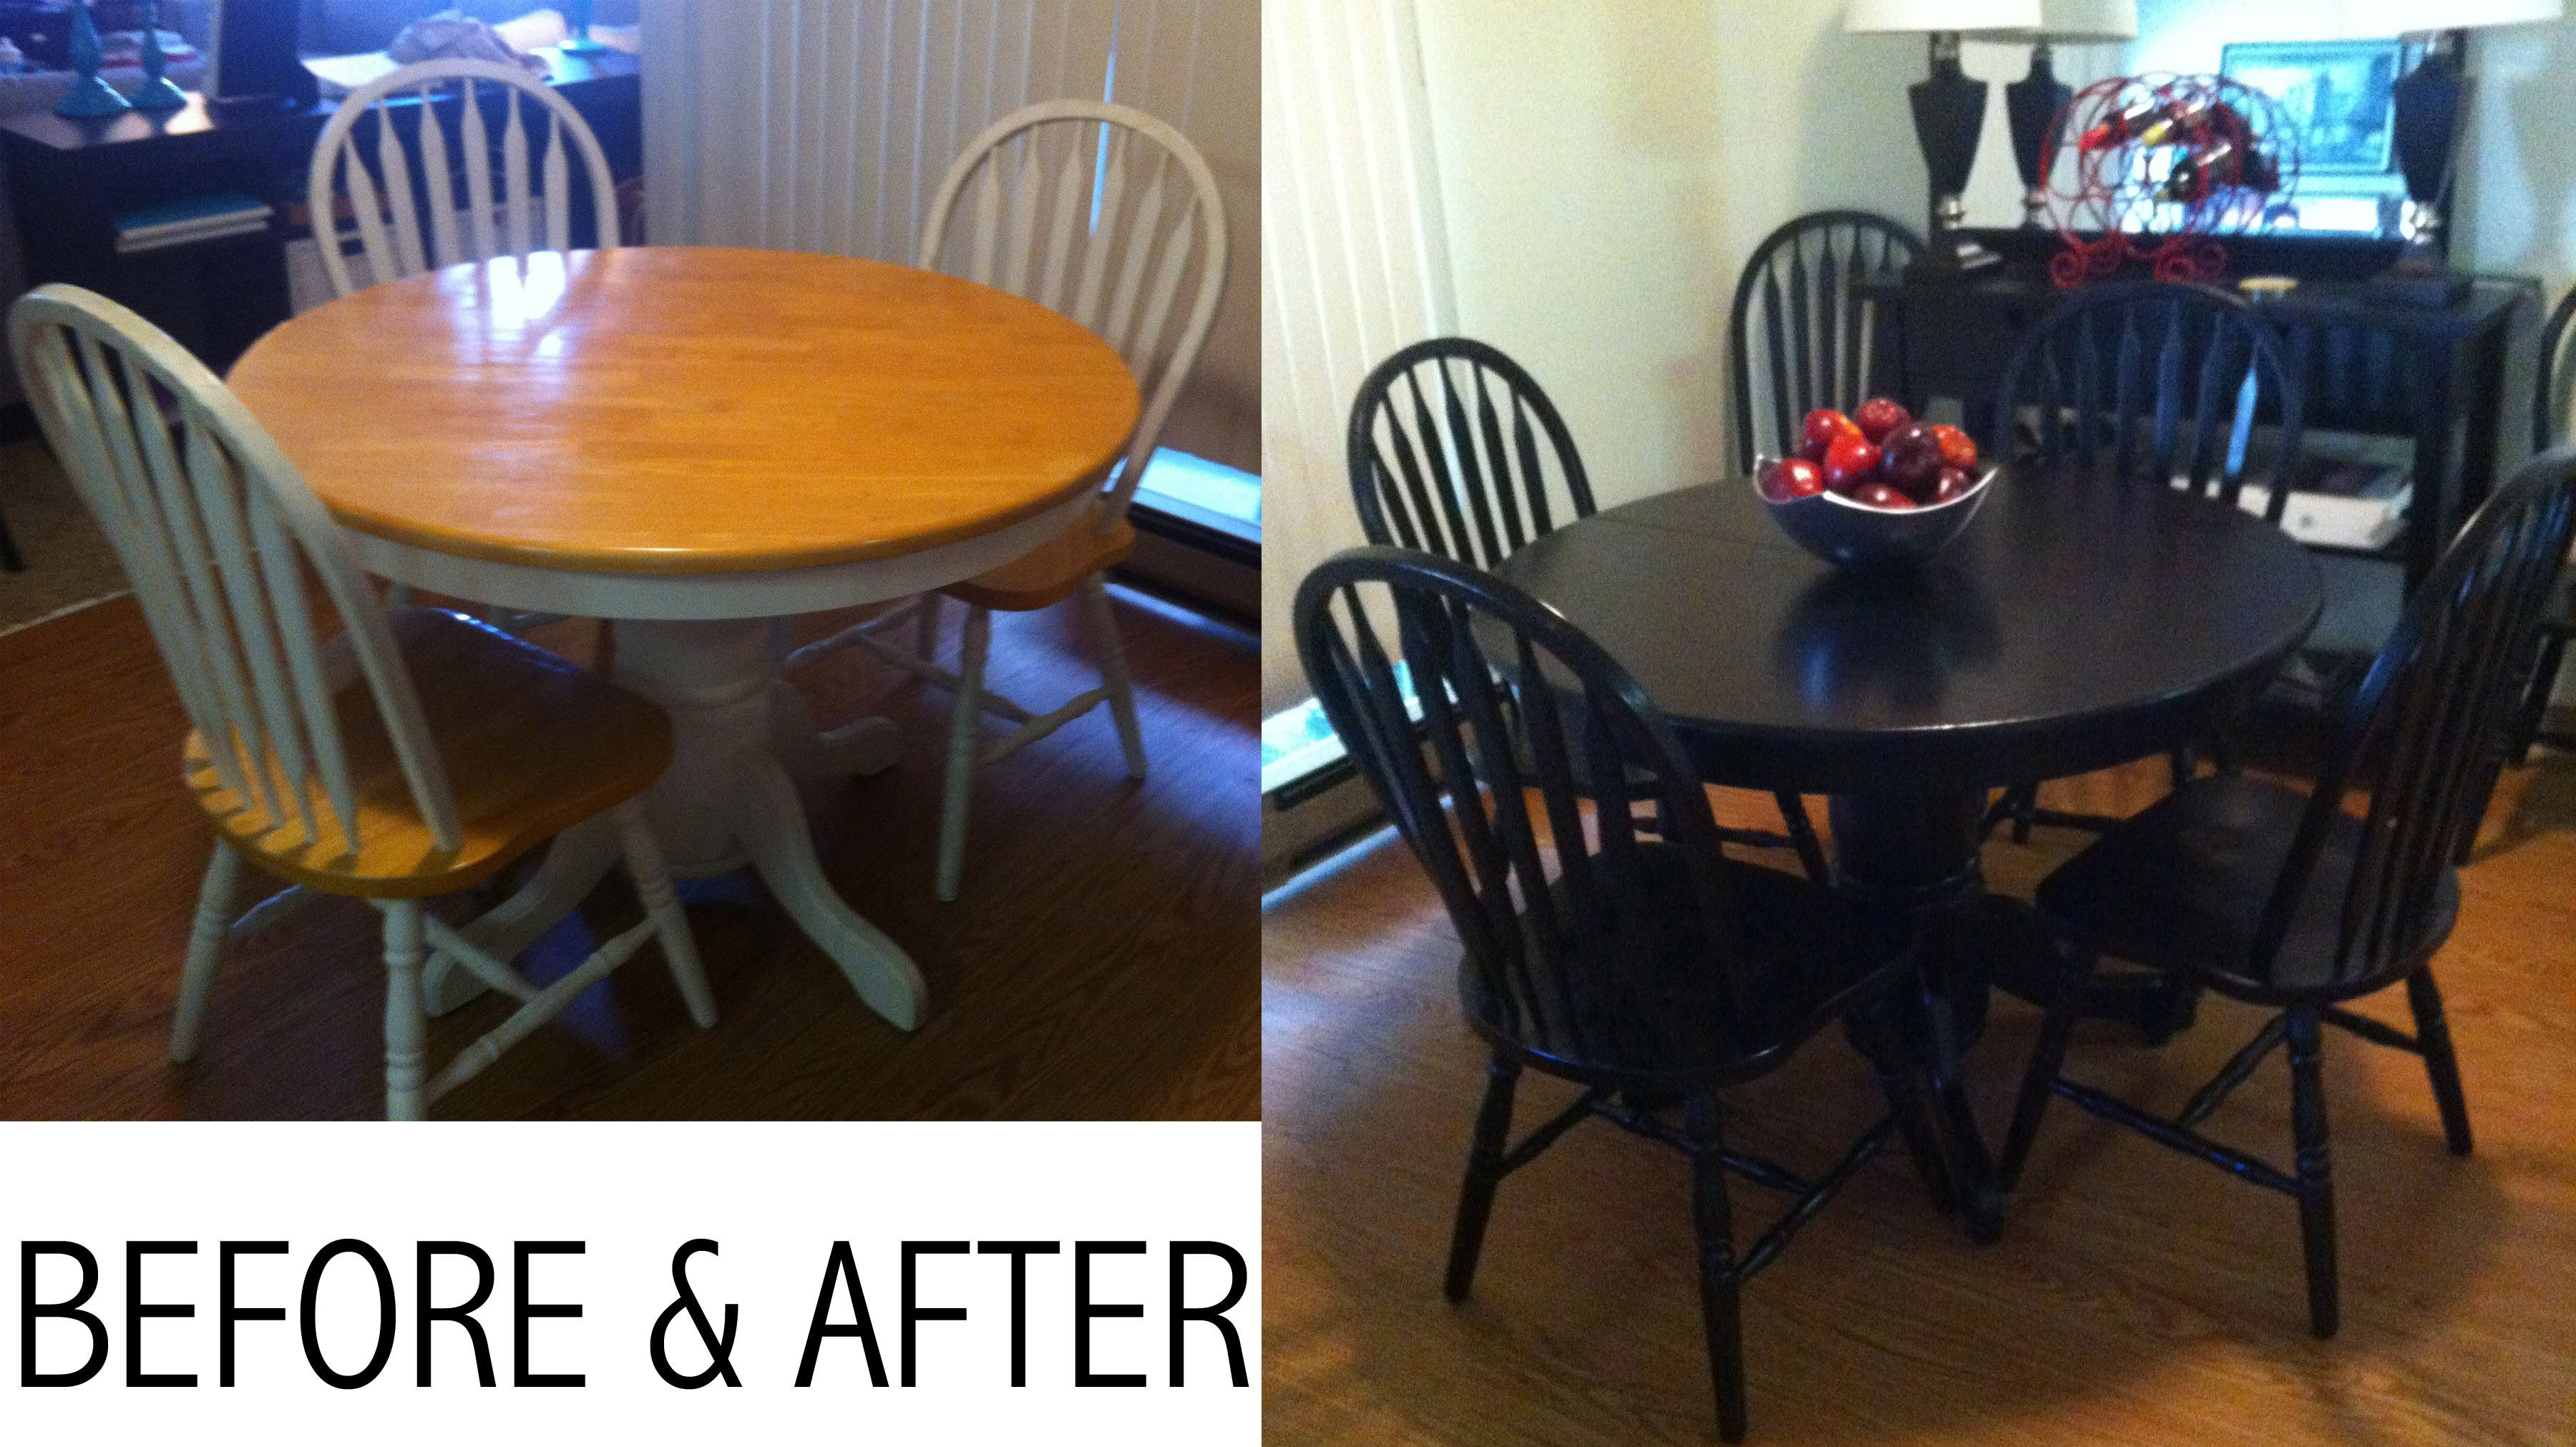 what kind of paint to use on dining room table | DIY paint job on my dining room table, no sanding required ...